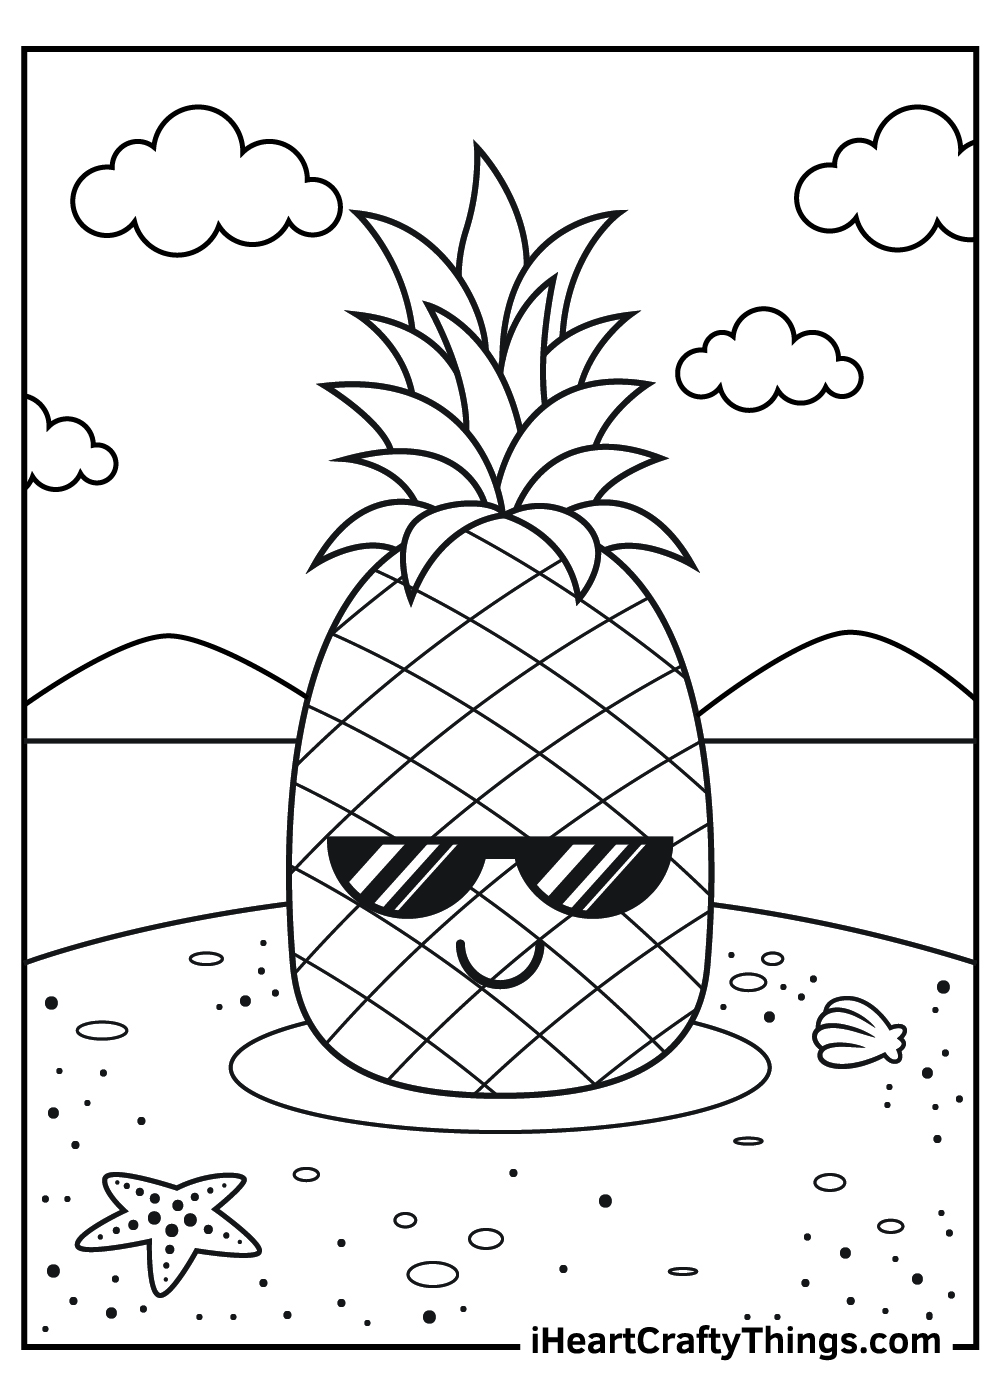 a pineapple with sunglasses coloring pages free